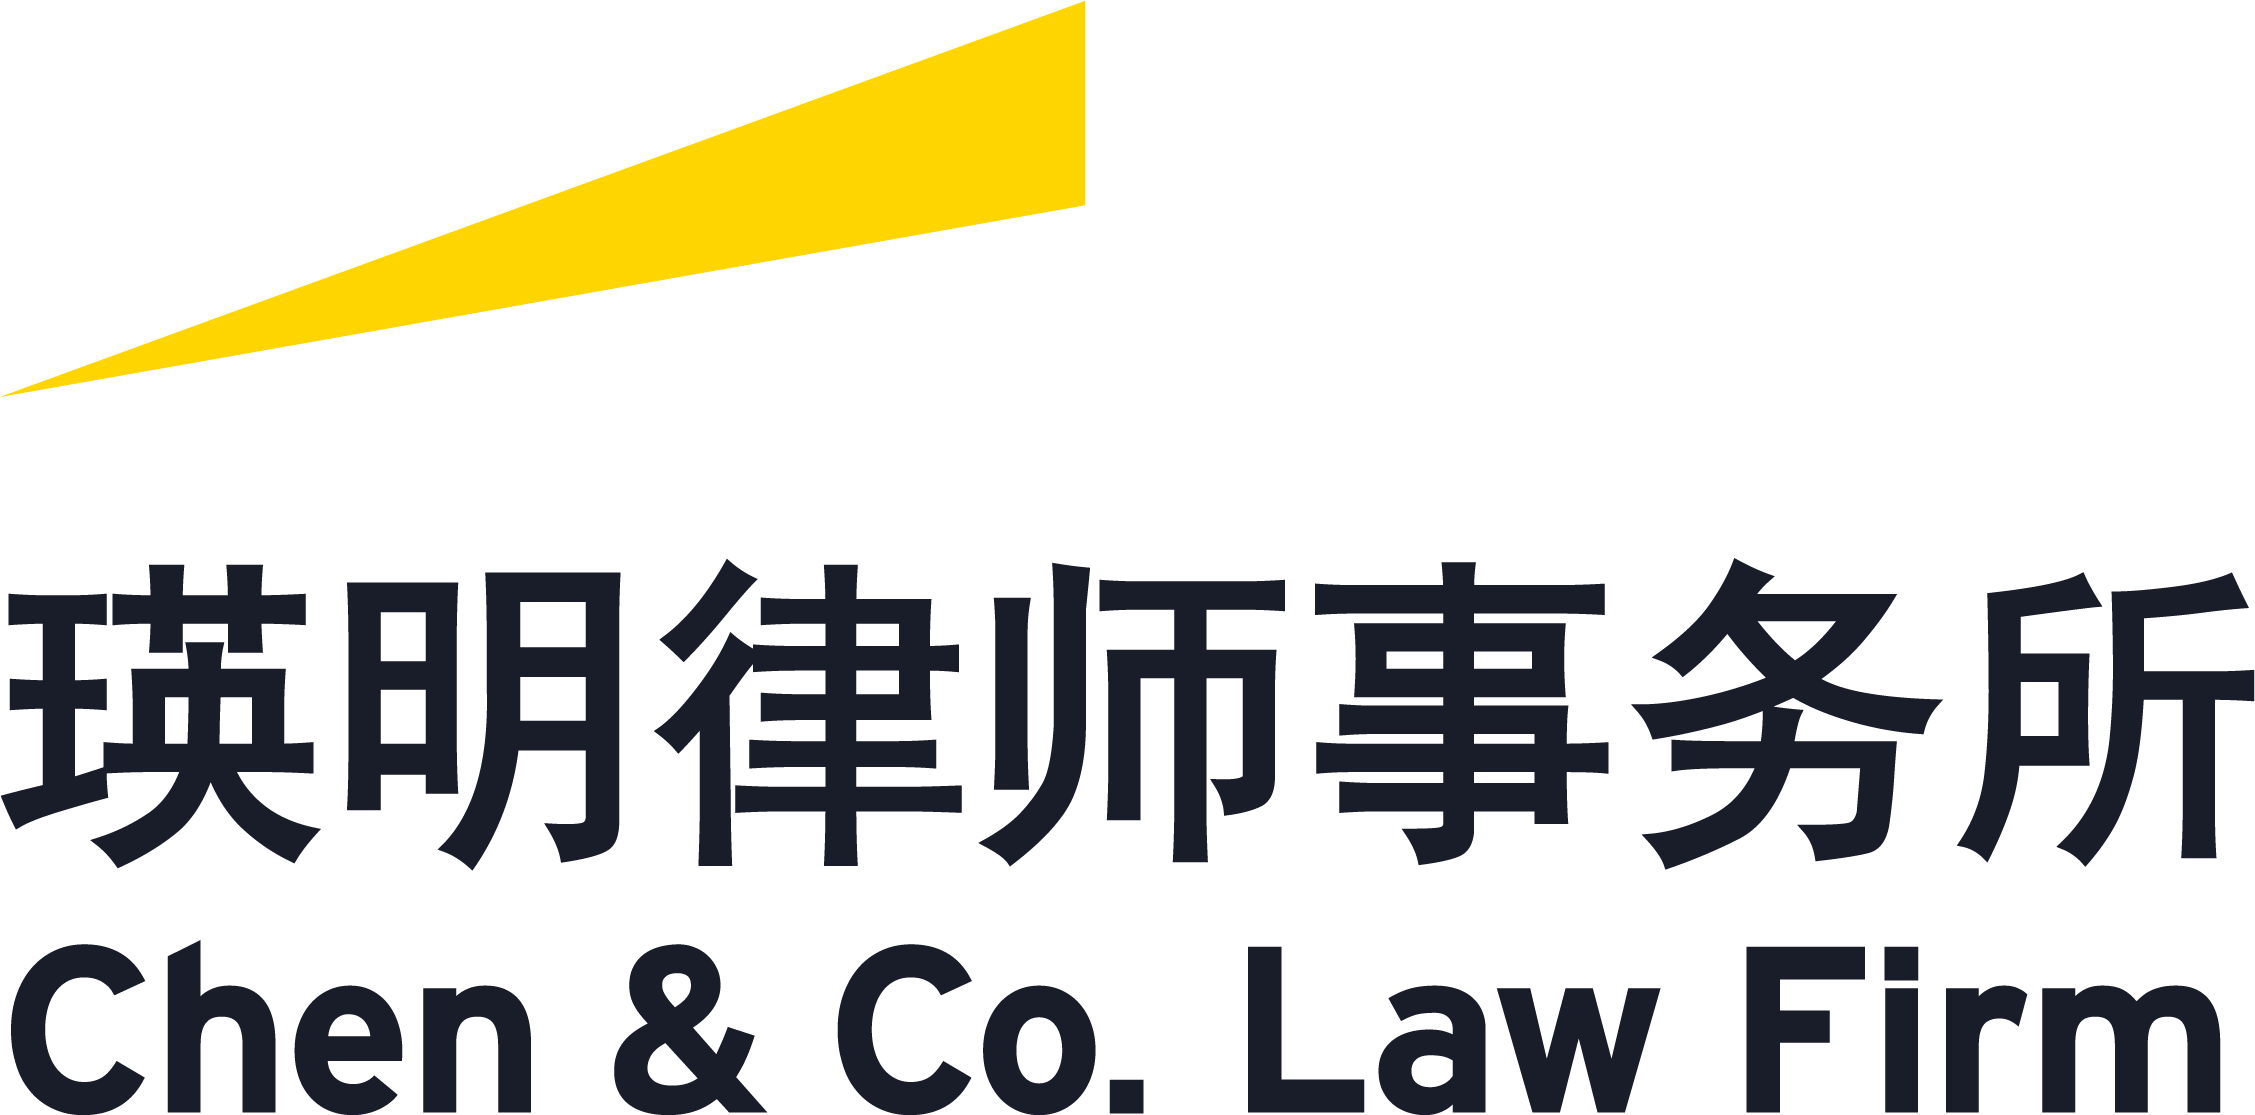 Chen_Co-Law-Firm-logo.png